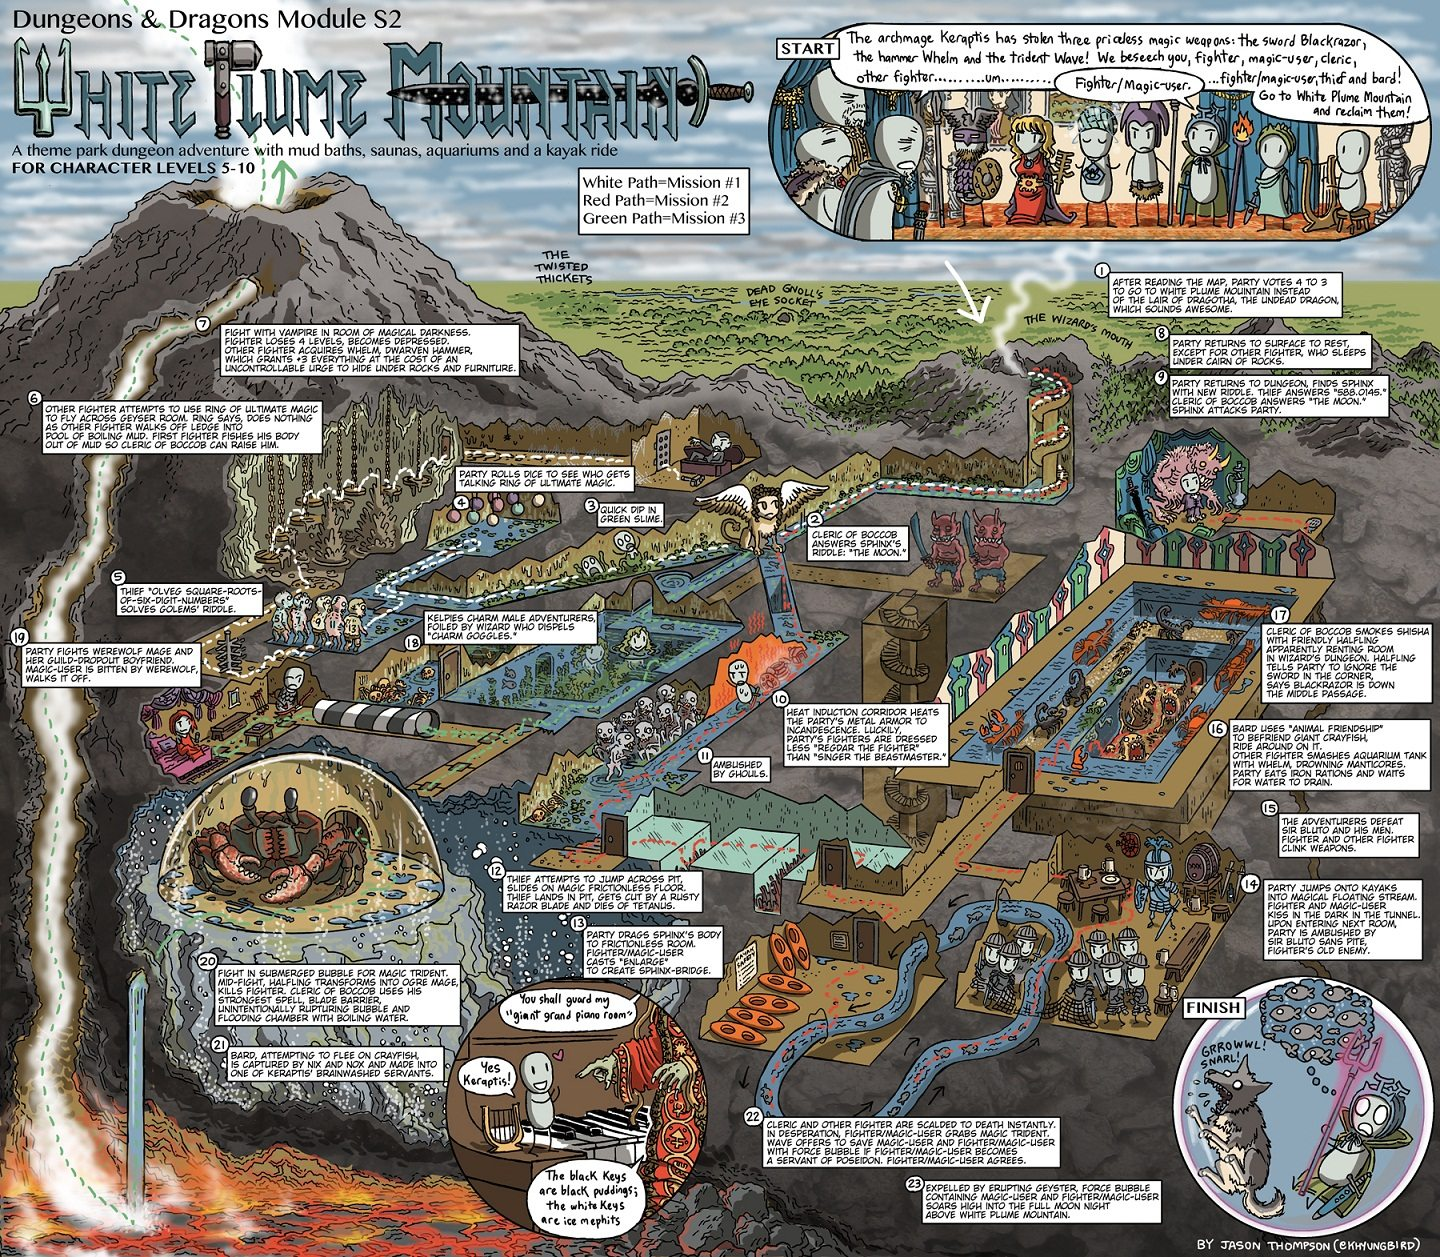 Amazing Illustrated Walk-thru Maps of Classic D&D Modules